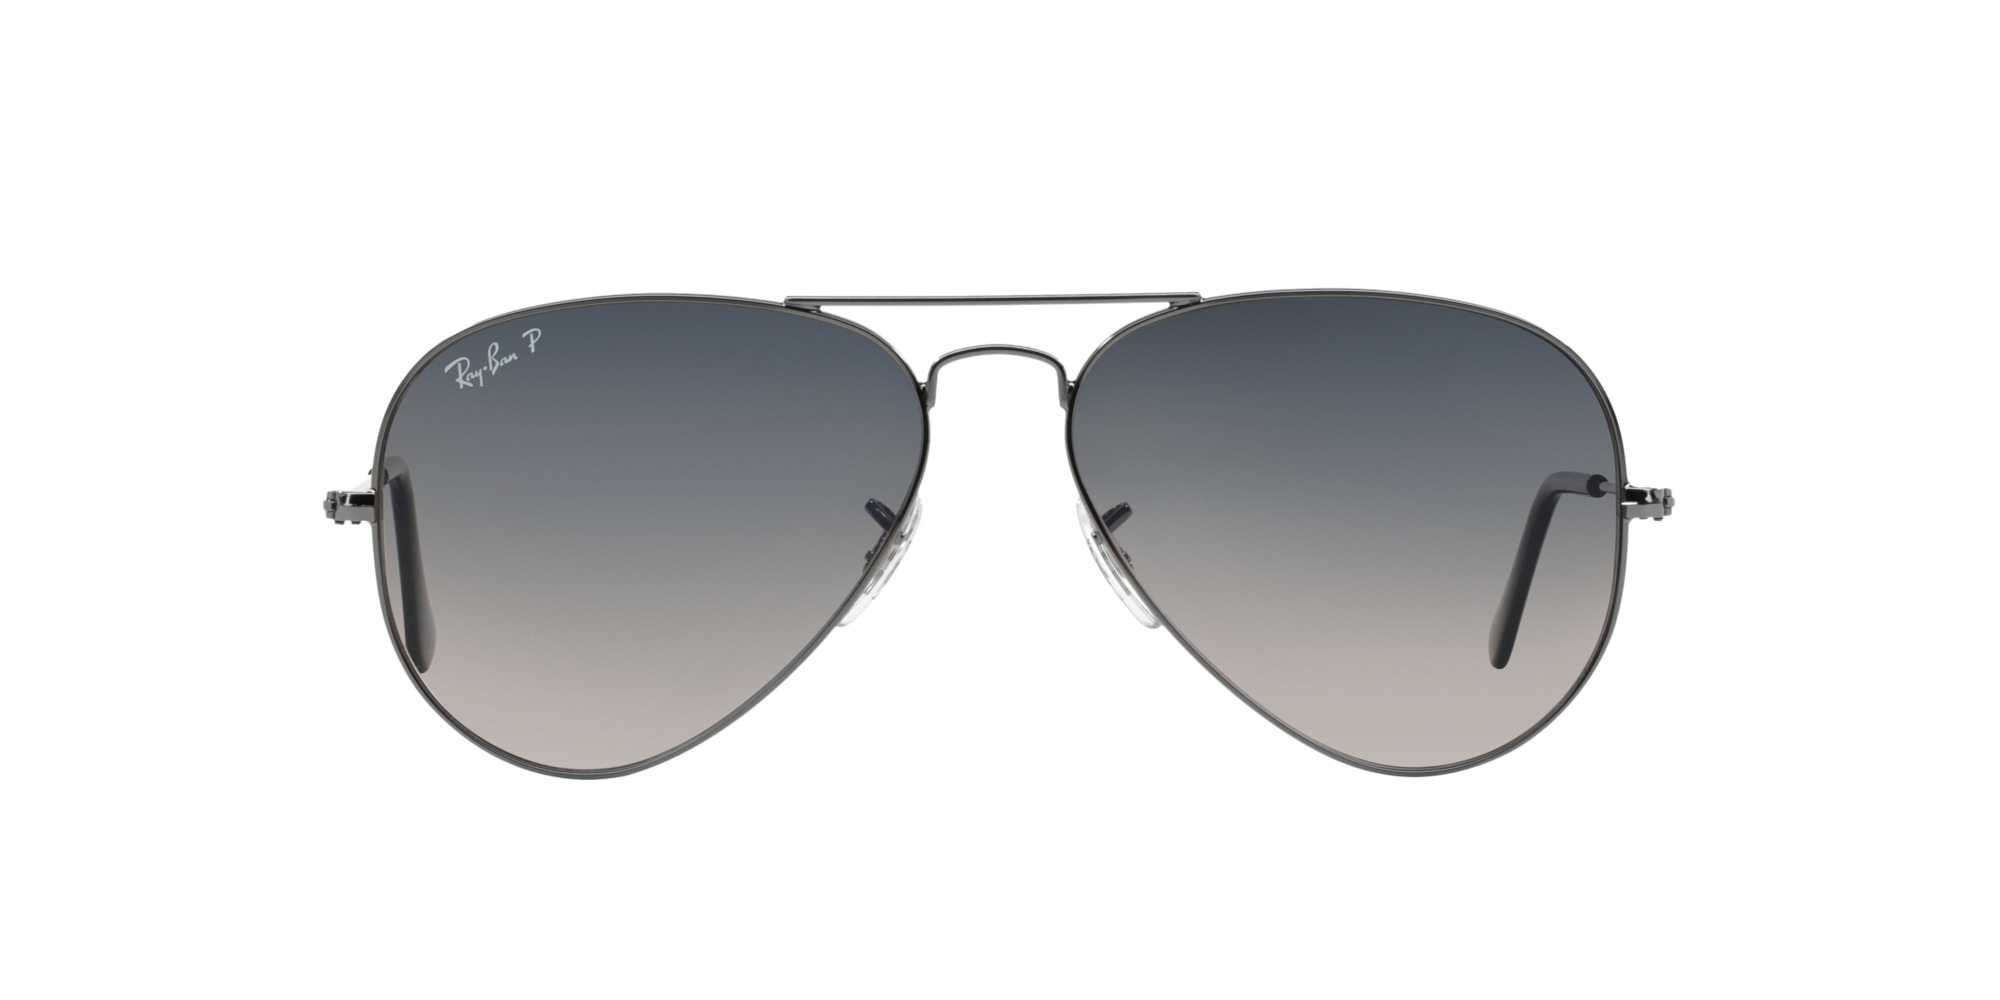 RAY-BAN AVIATOR RB 3025 004/78 POLARIZADO-360